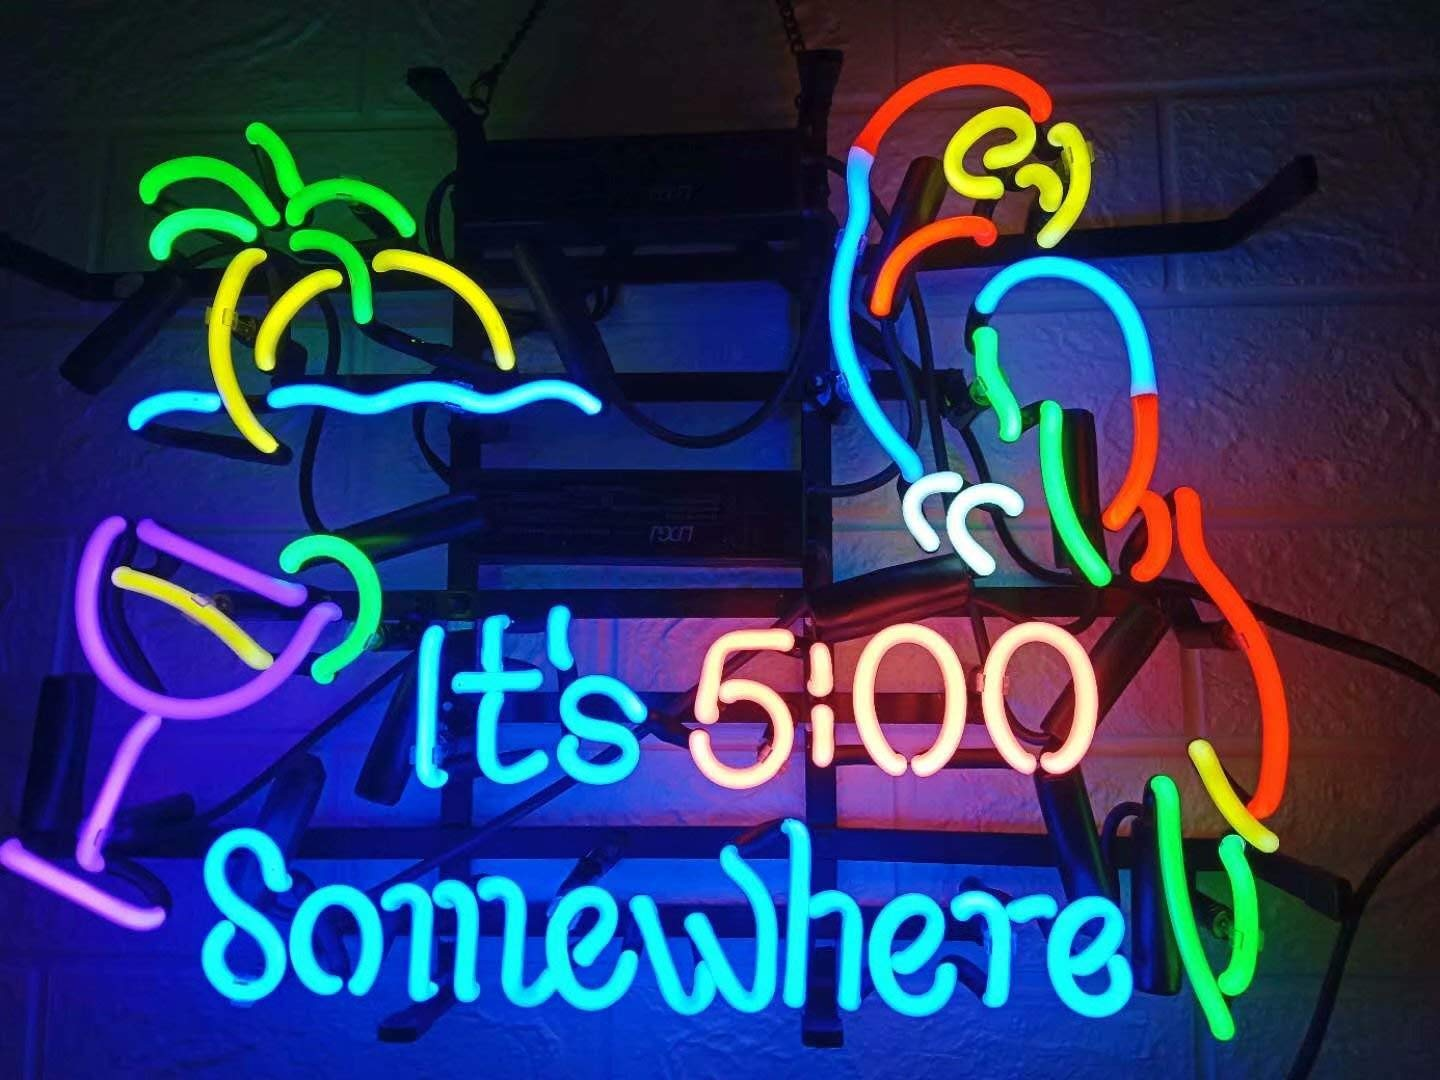 LDGJ Neon Signs It's 5 :00 S omewhere Parrot Custom Handmade Home Beer Bar Pub Recreation Room Lights Windows Glass Wall Sign Party Birthday Bedroom Bedside Table Decoration